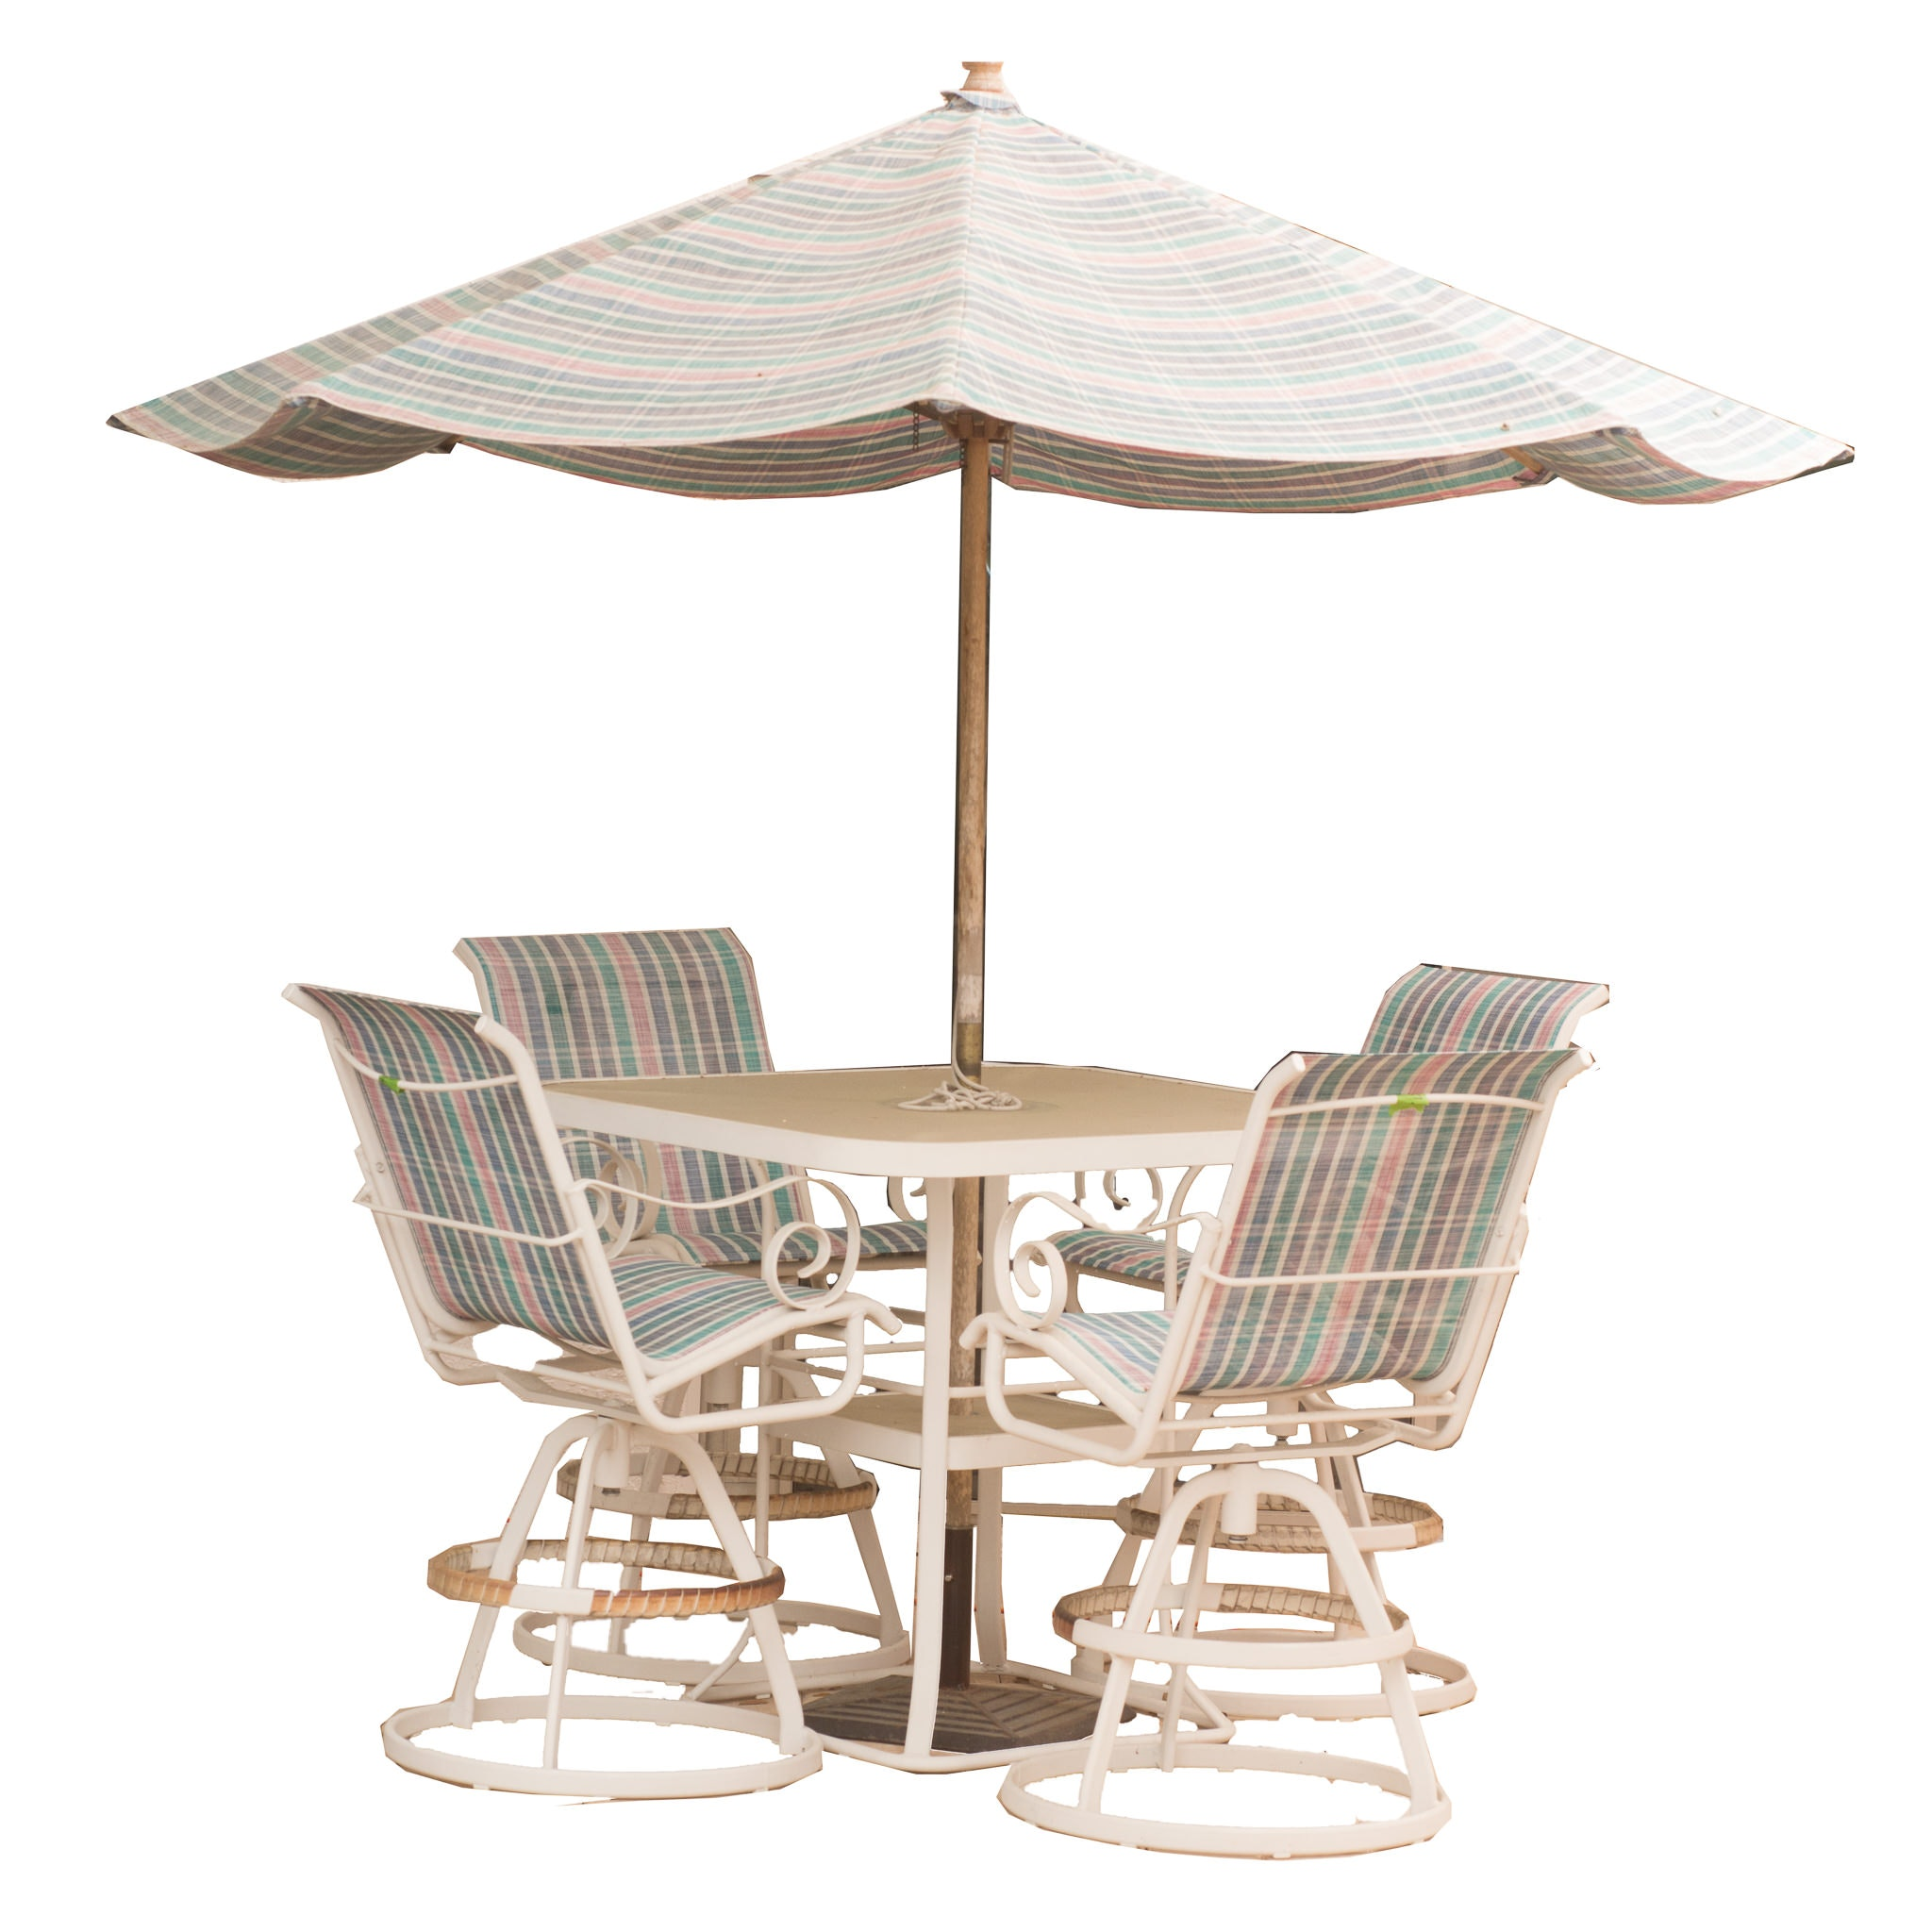 An Outdoor Furniture Set